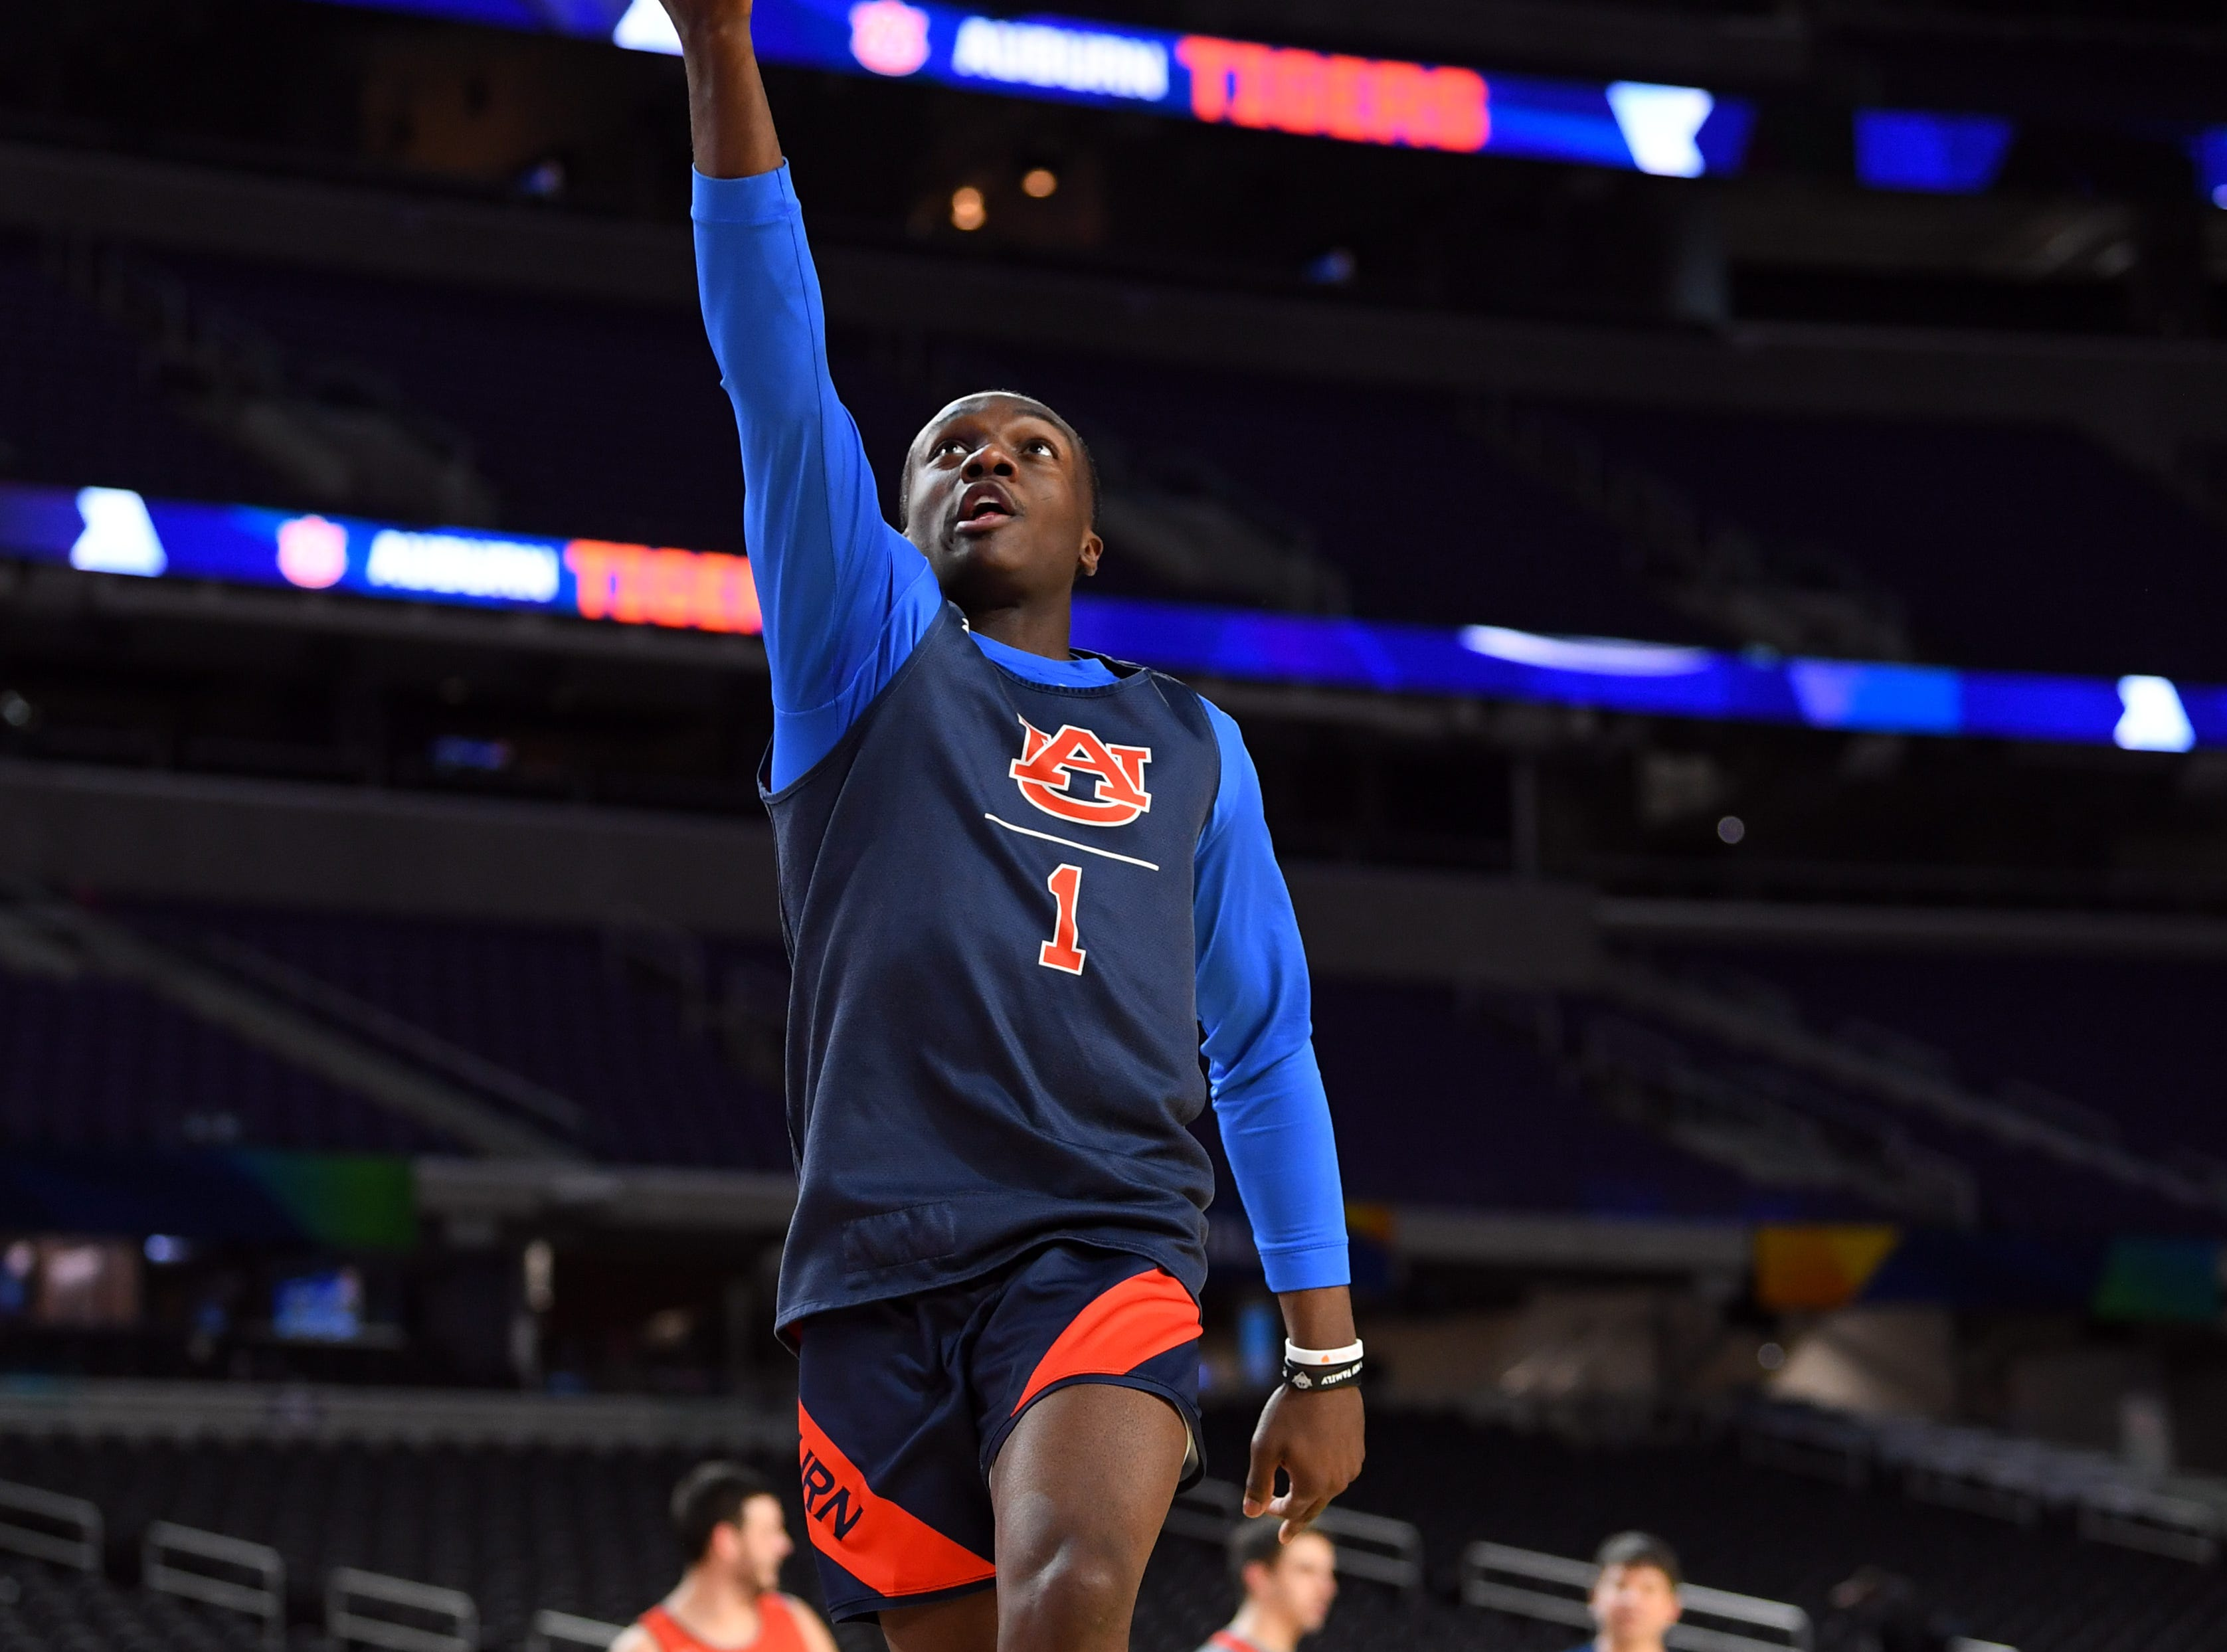 Apr 5, 2019; Minneapolis, MN, USA; Auburn Tigers guard Jared Harper (1) performs a lay up during practice for the 2019 men's Final Four at US Bank Stadium. Mandatory Credit: Bob Donnan-USA TODAY Sports